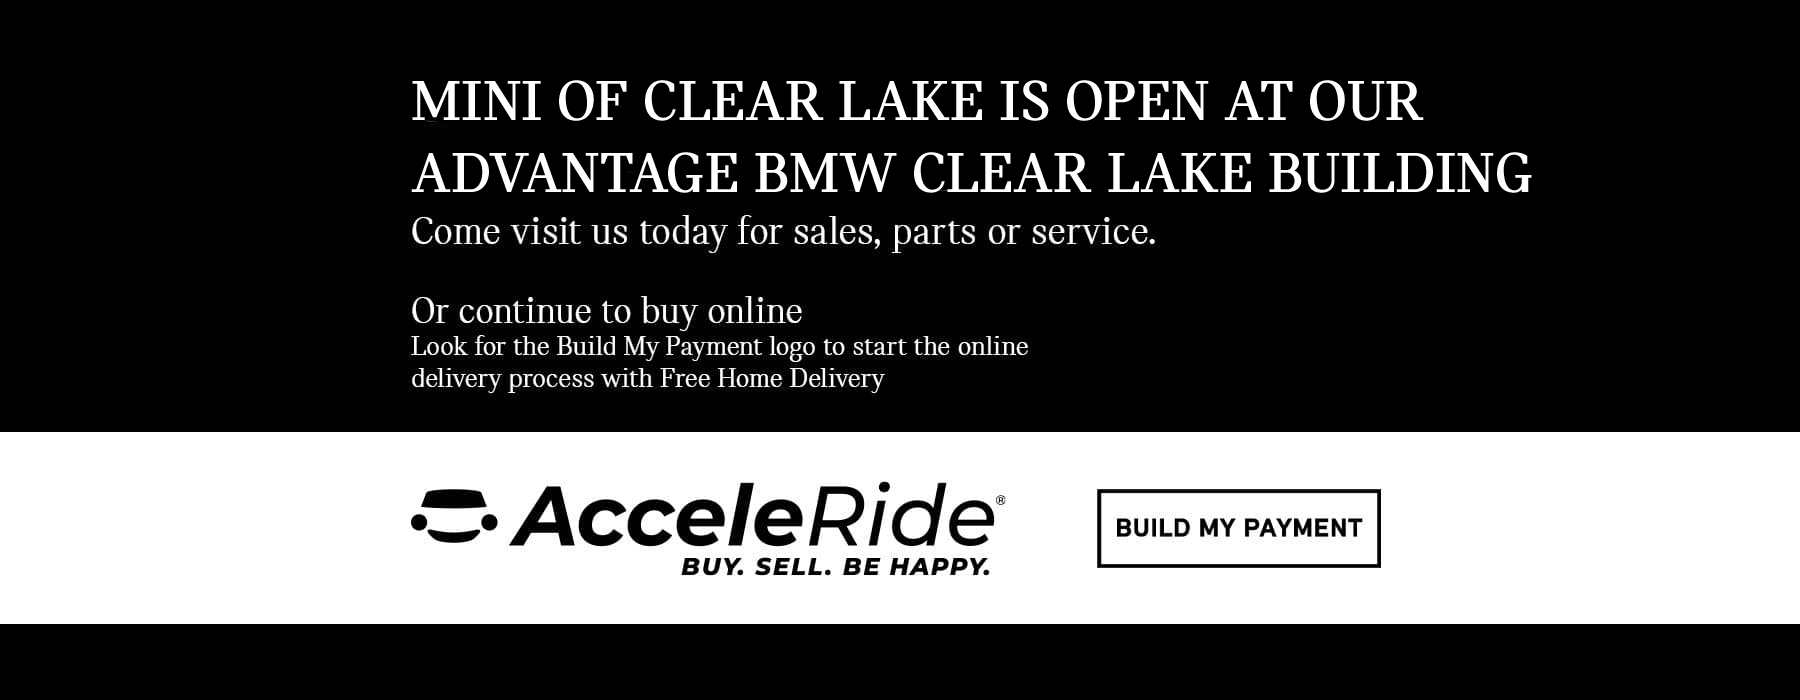 MINI-ClearLake-OPENBanner2